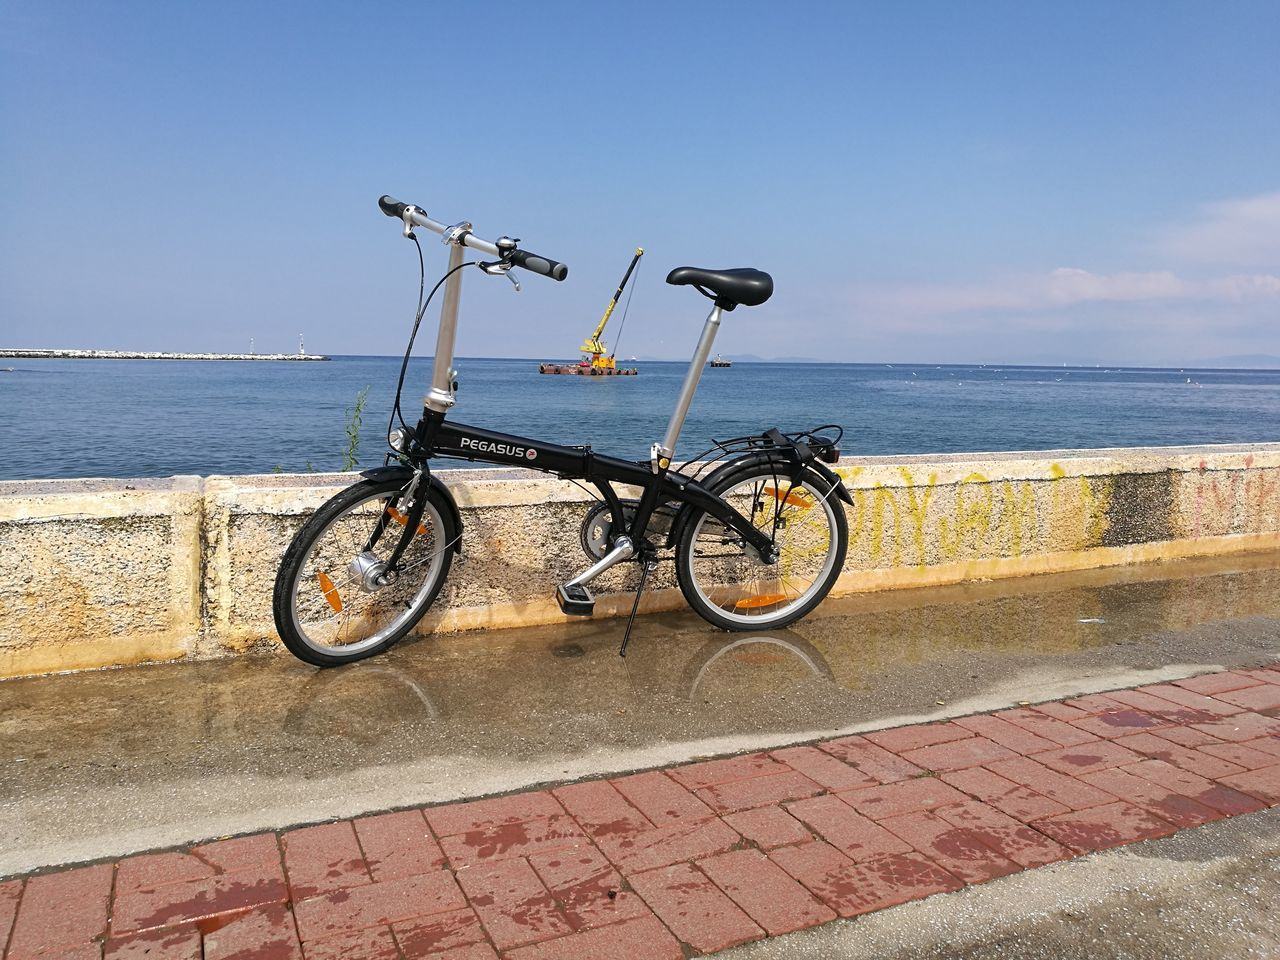 bicycle, transportation, sea, stationary, water, day, outdoors, no people, mode of transport, horizon over water, sky, nature, land vehicle, retaining wall, clear sky, beauty in nature